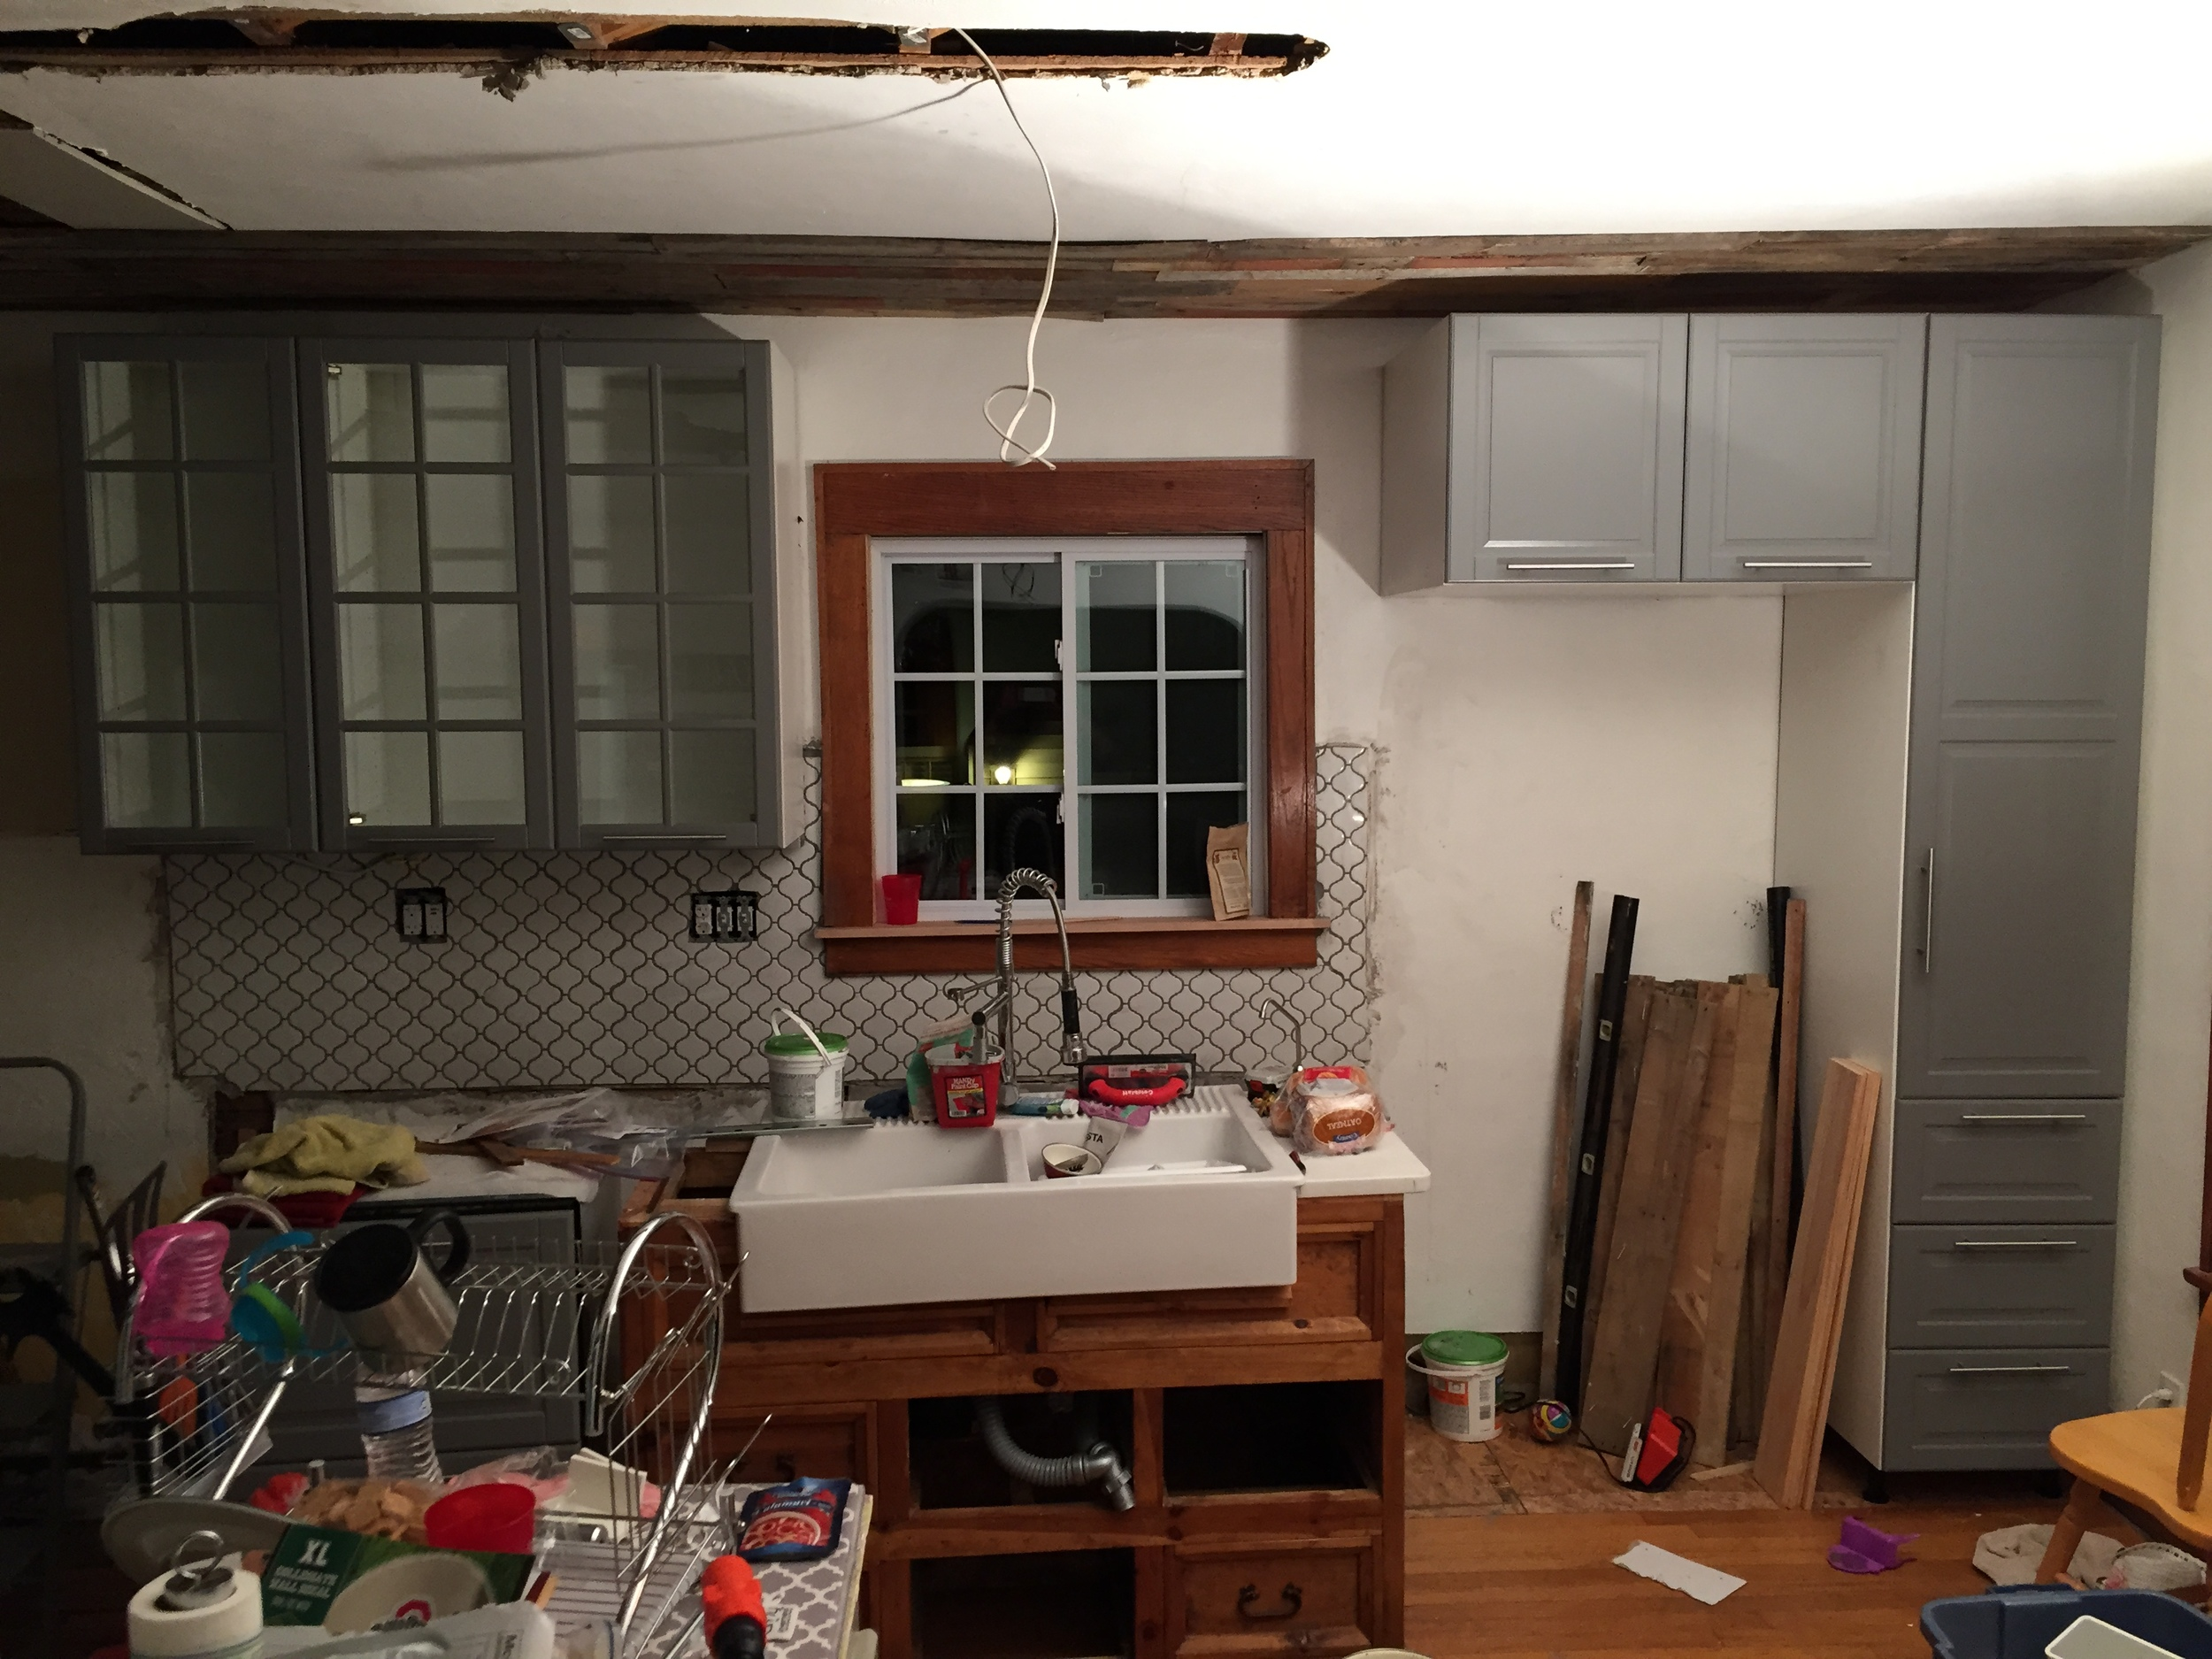 Home Work - Home remodeling, re-purposed builds + crafty goodness all around